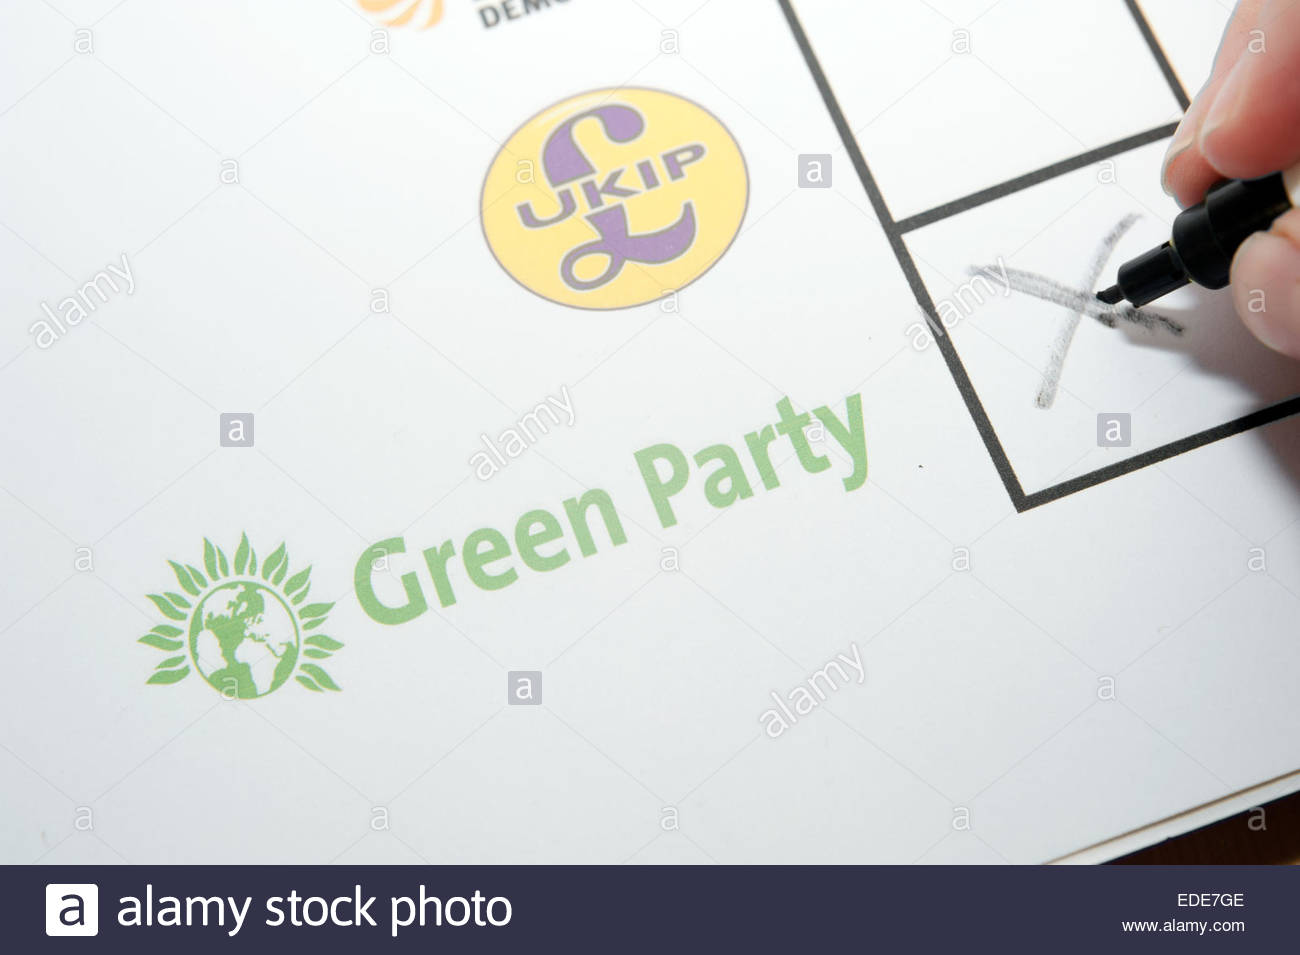 UK Elections ballot paper facsimile. Voting for the Green party. - Stock Image